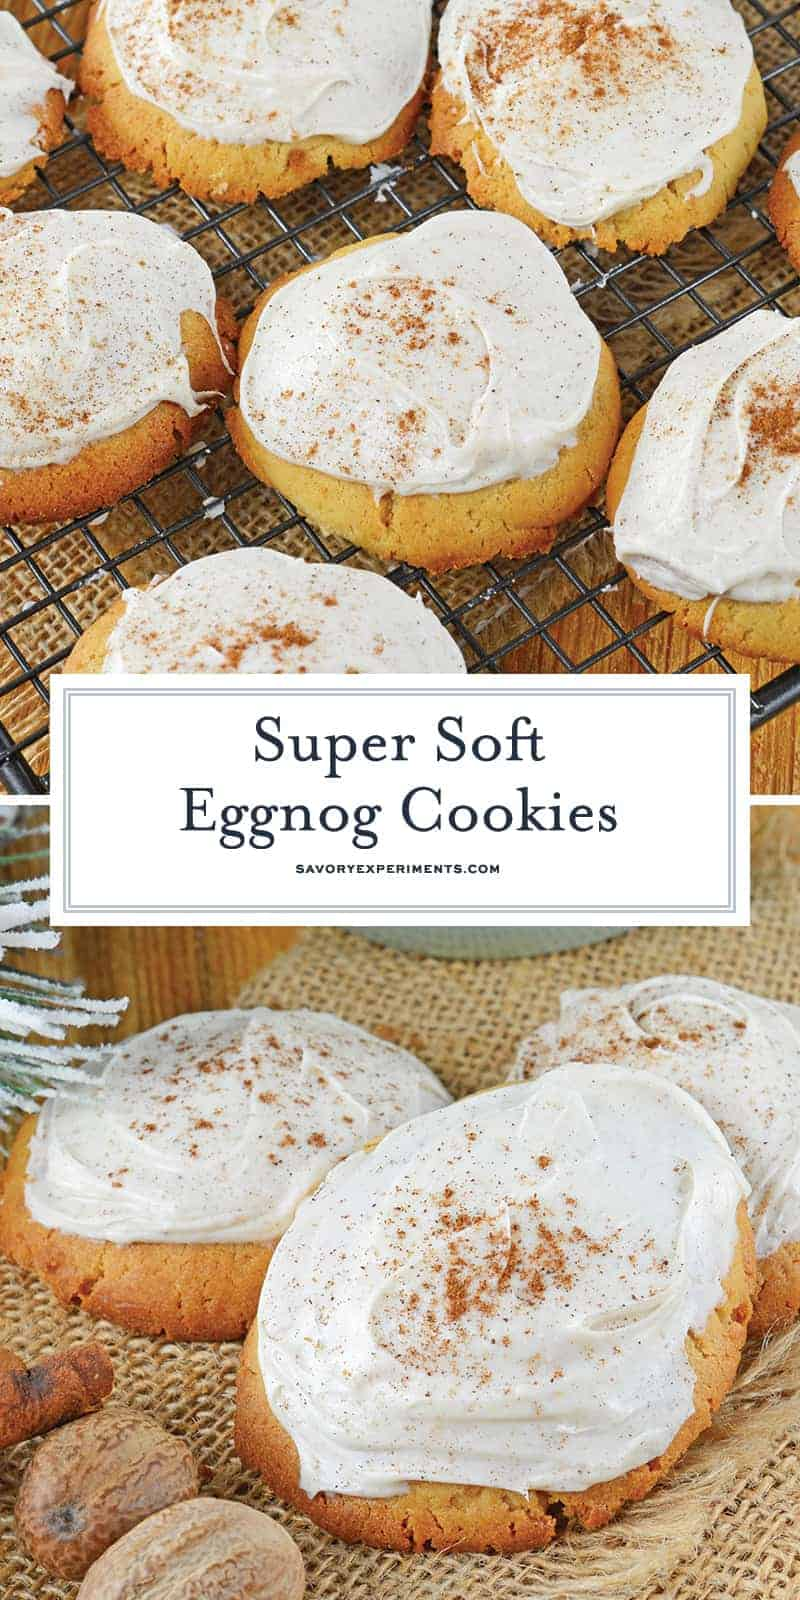 Eggnog Cookies are luscious and full of flavor! These cookies come straight from the North Pole and are the best way to use leftover eggnog! #whatiseggnog #eggnogcookies www.savoryexperiments.com